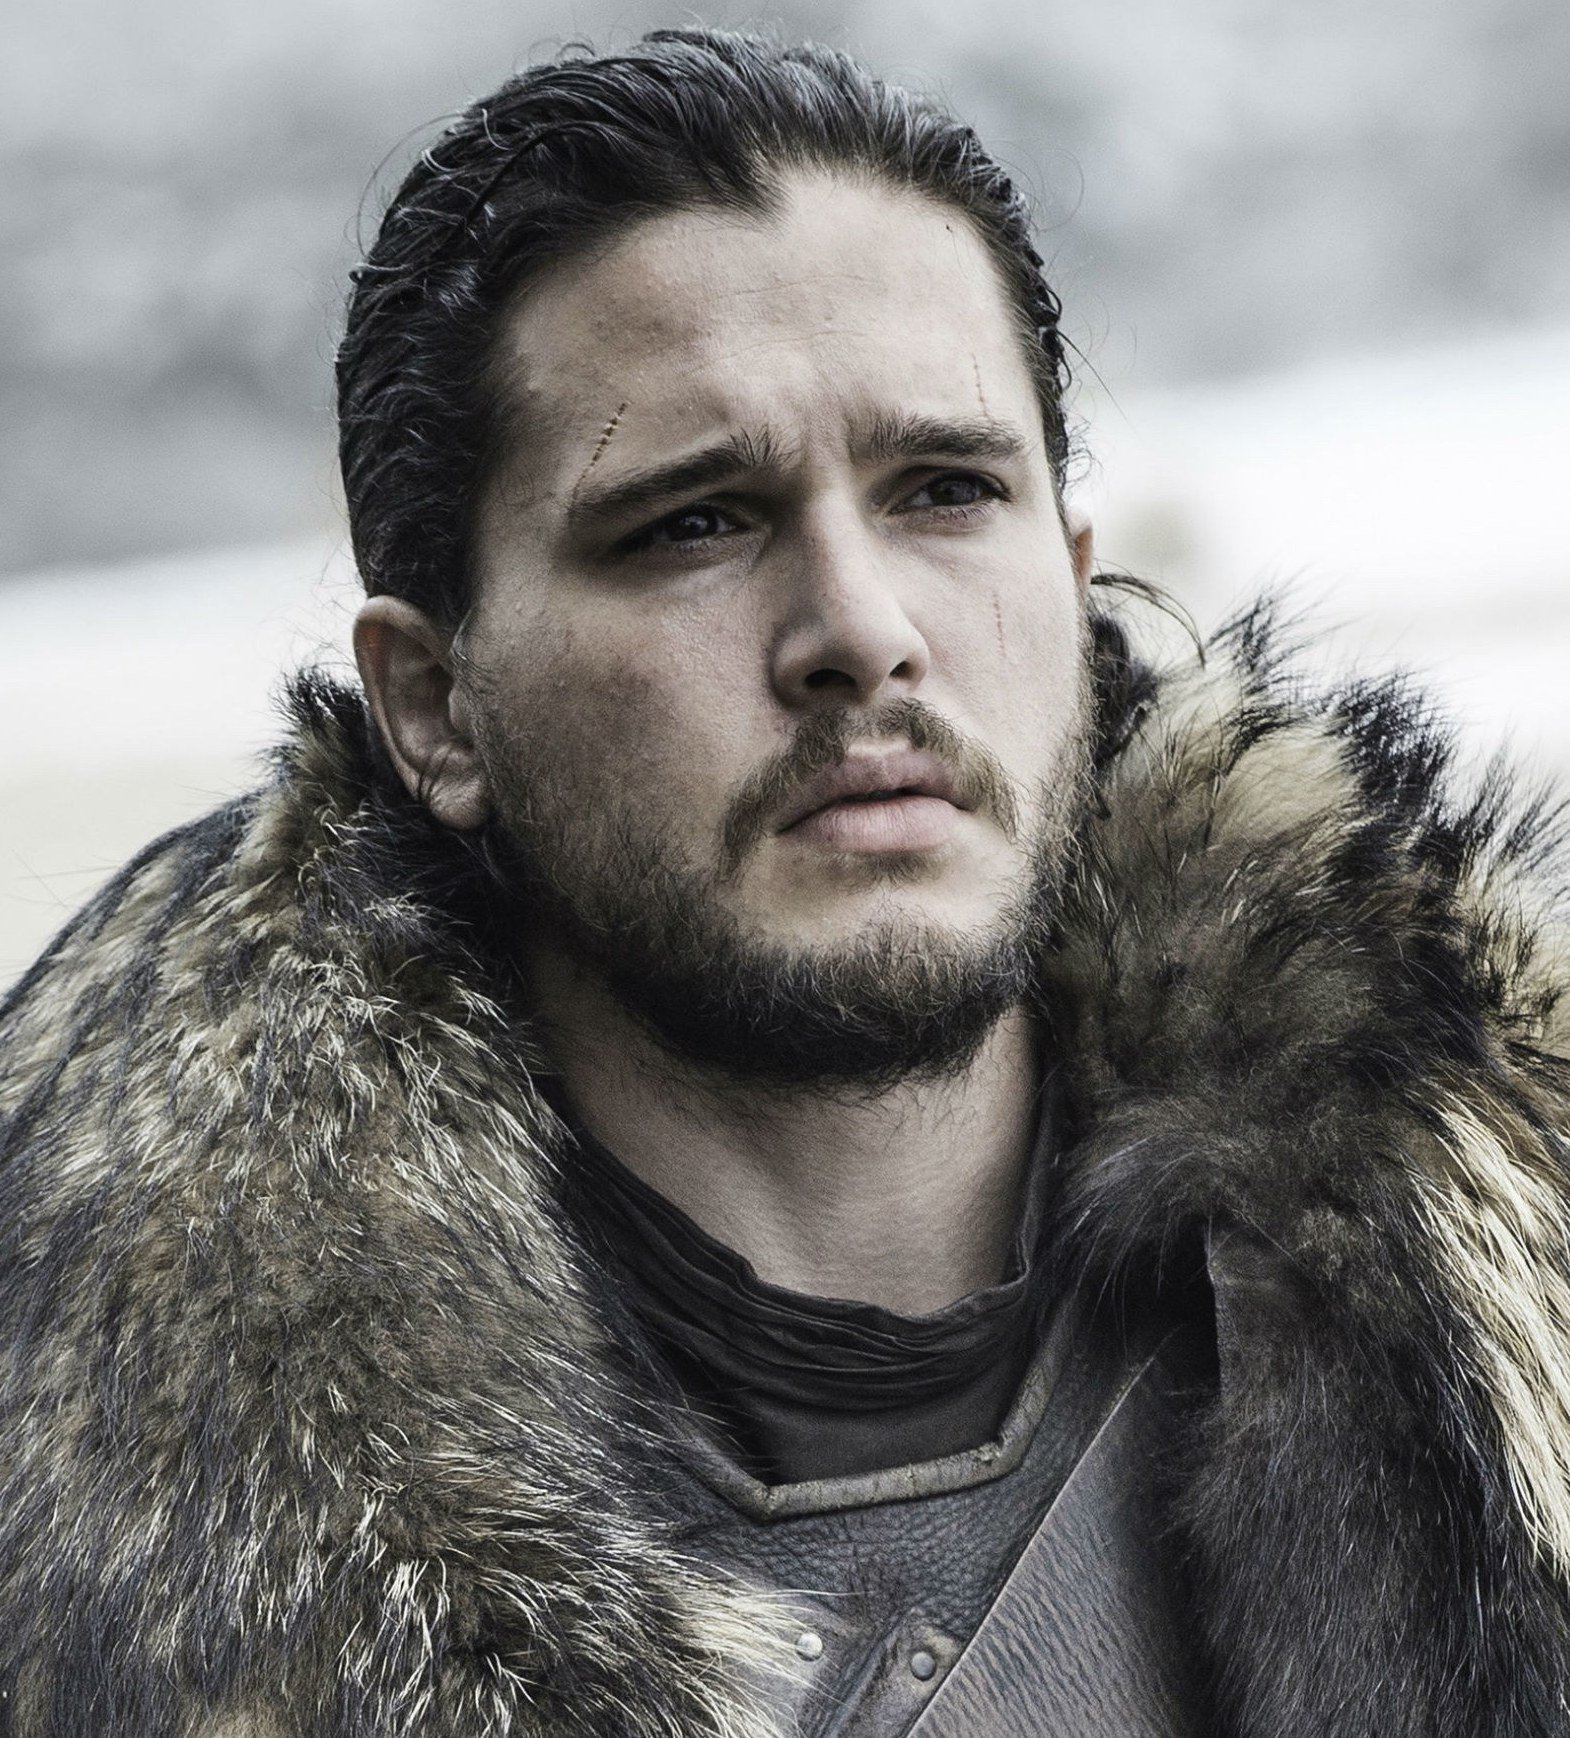 kit harington black eye audition 20 Things You Didn't Know About Kit Harington